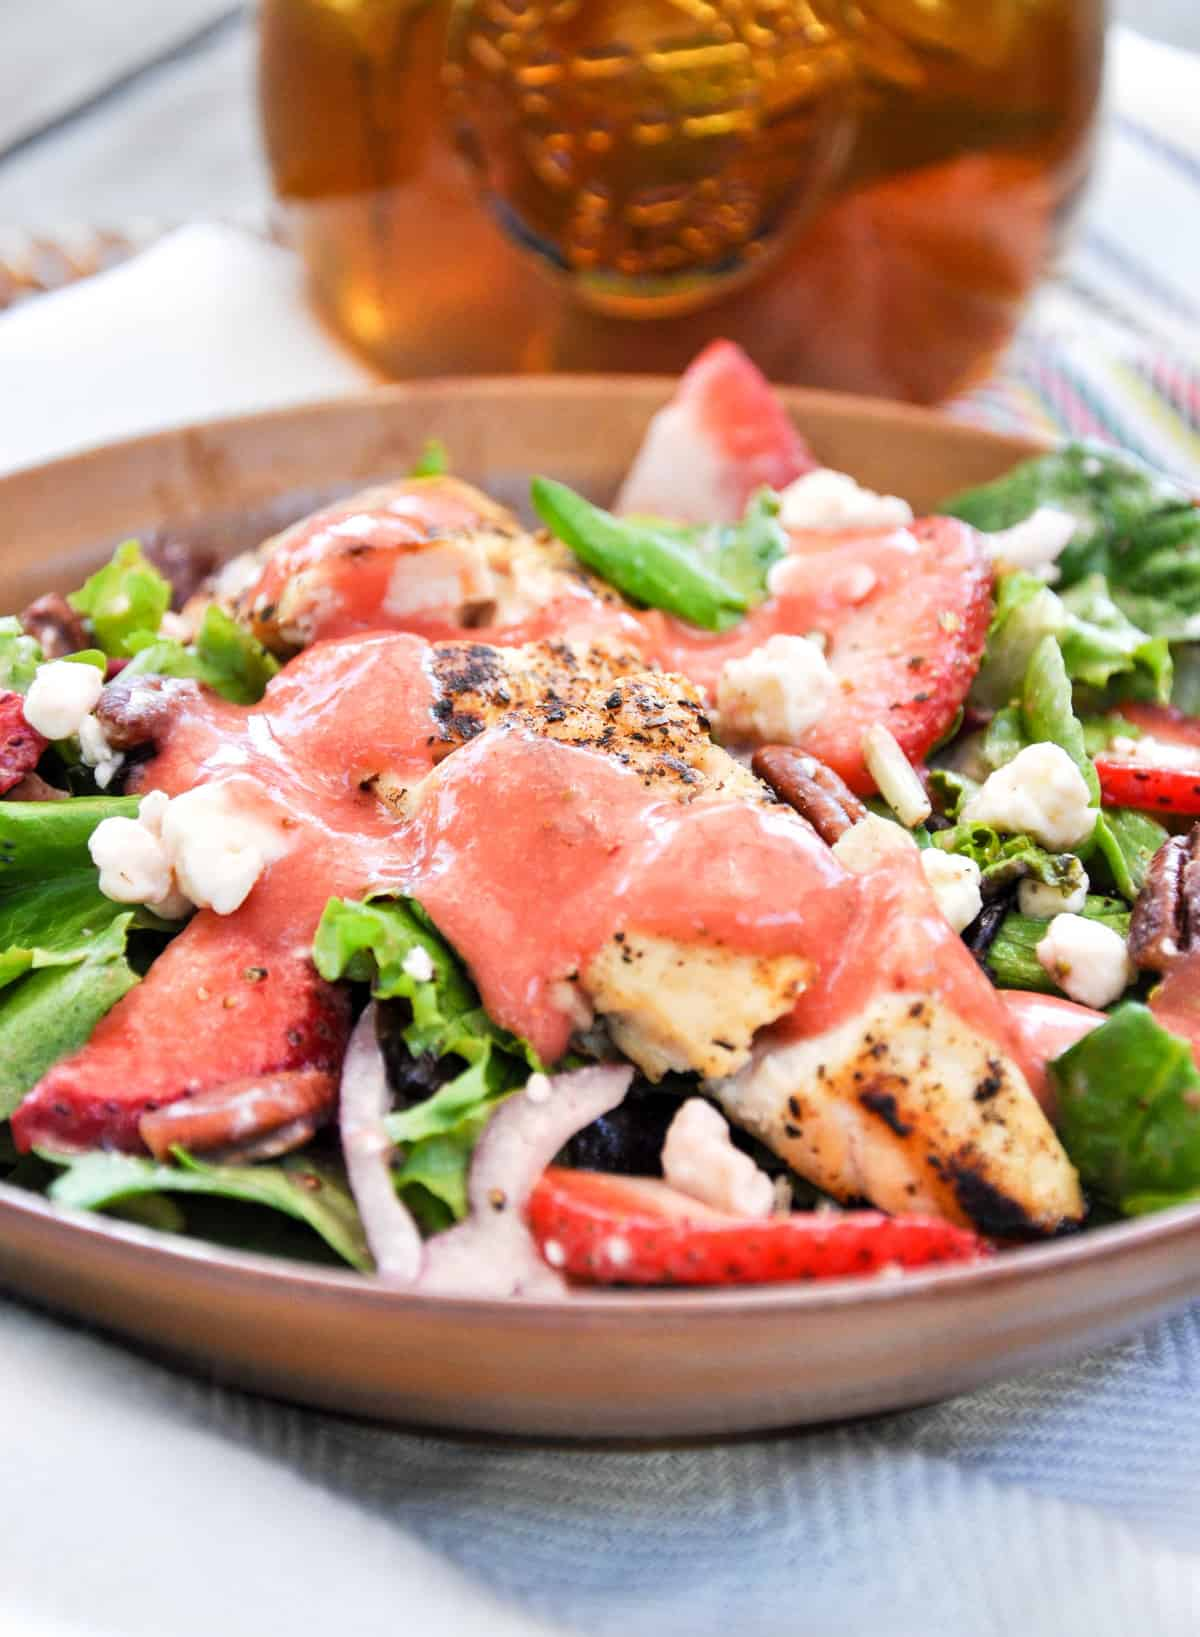 Strawberry Salad topped with a strawberry vinaigrette